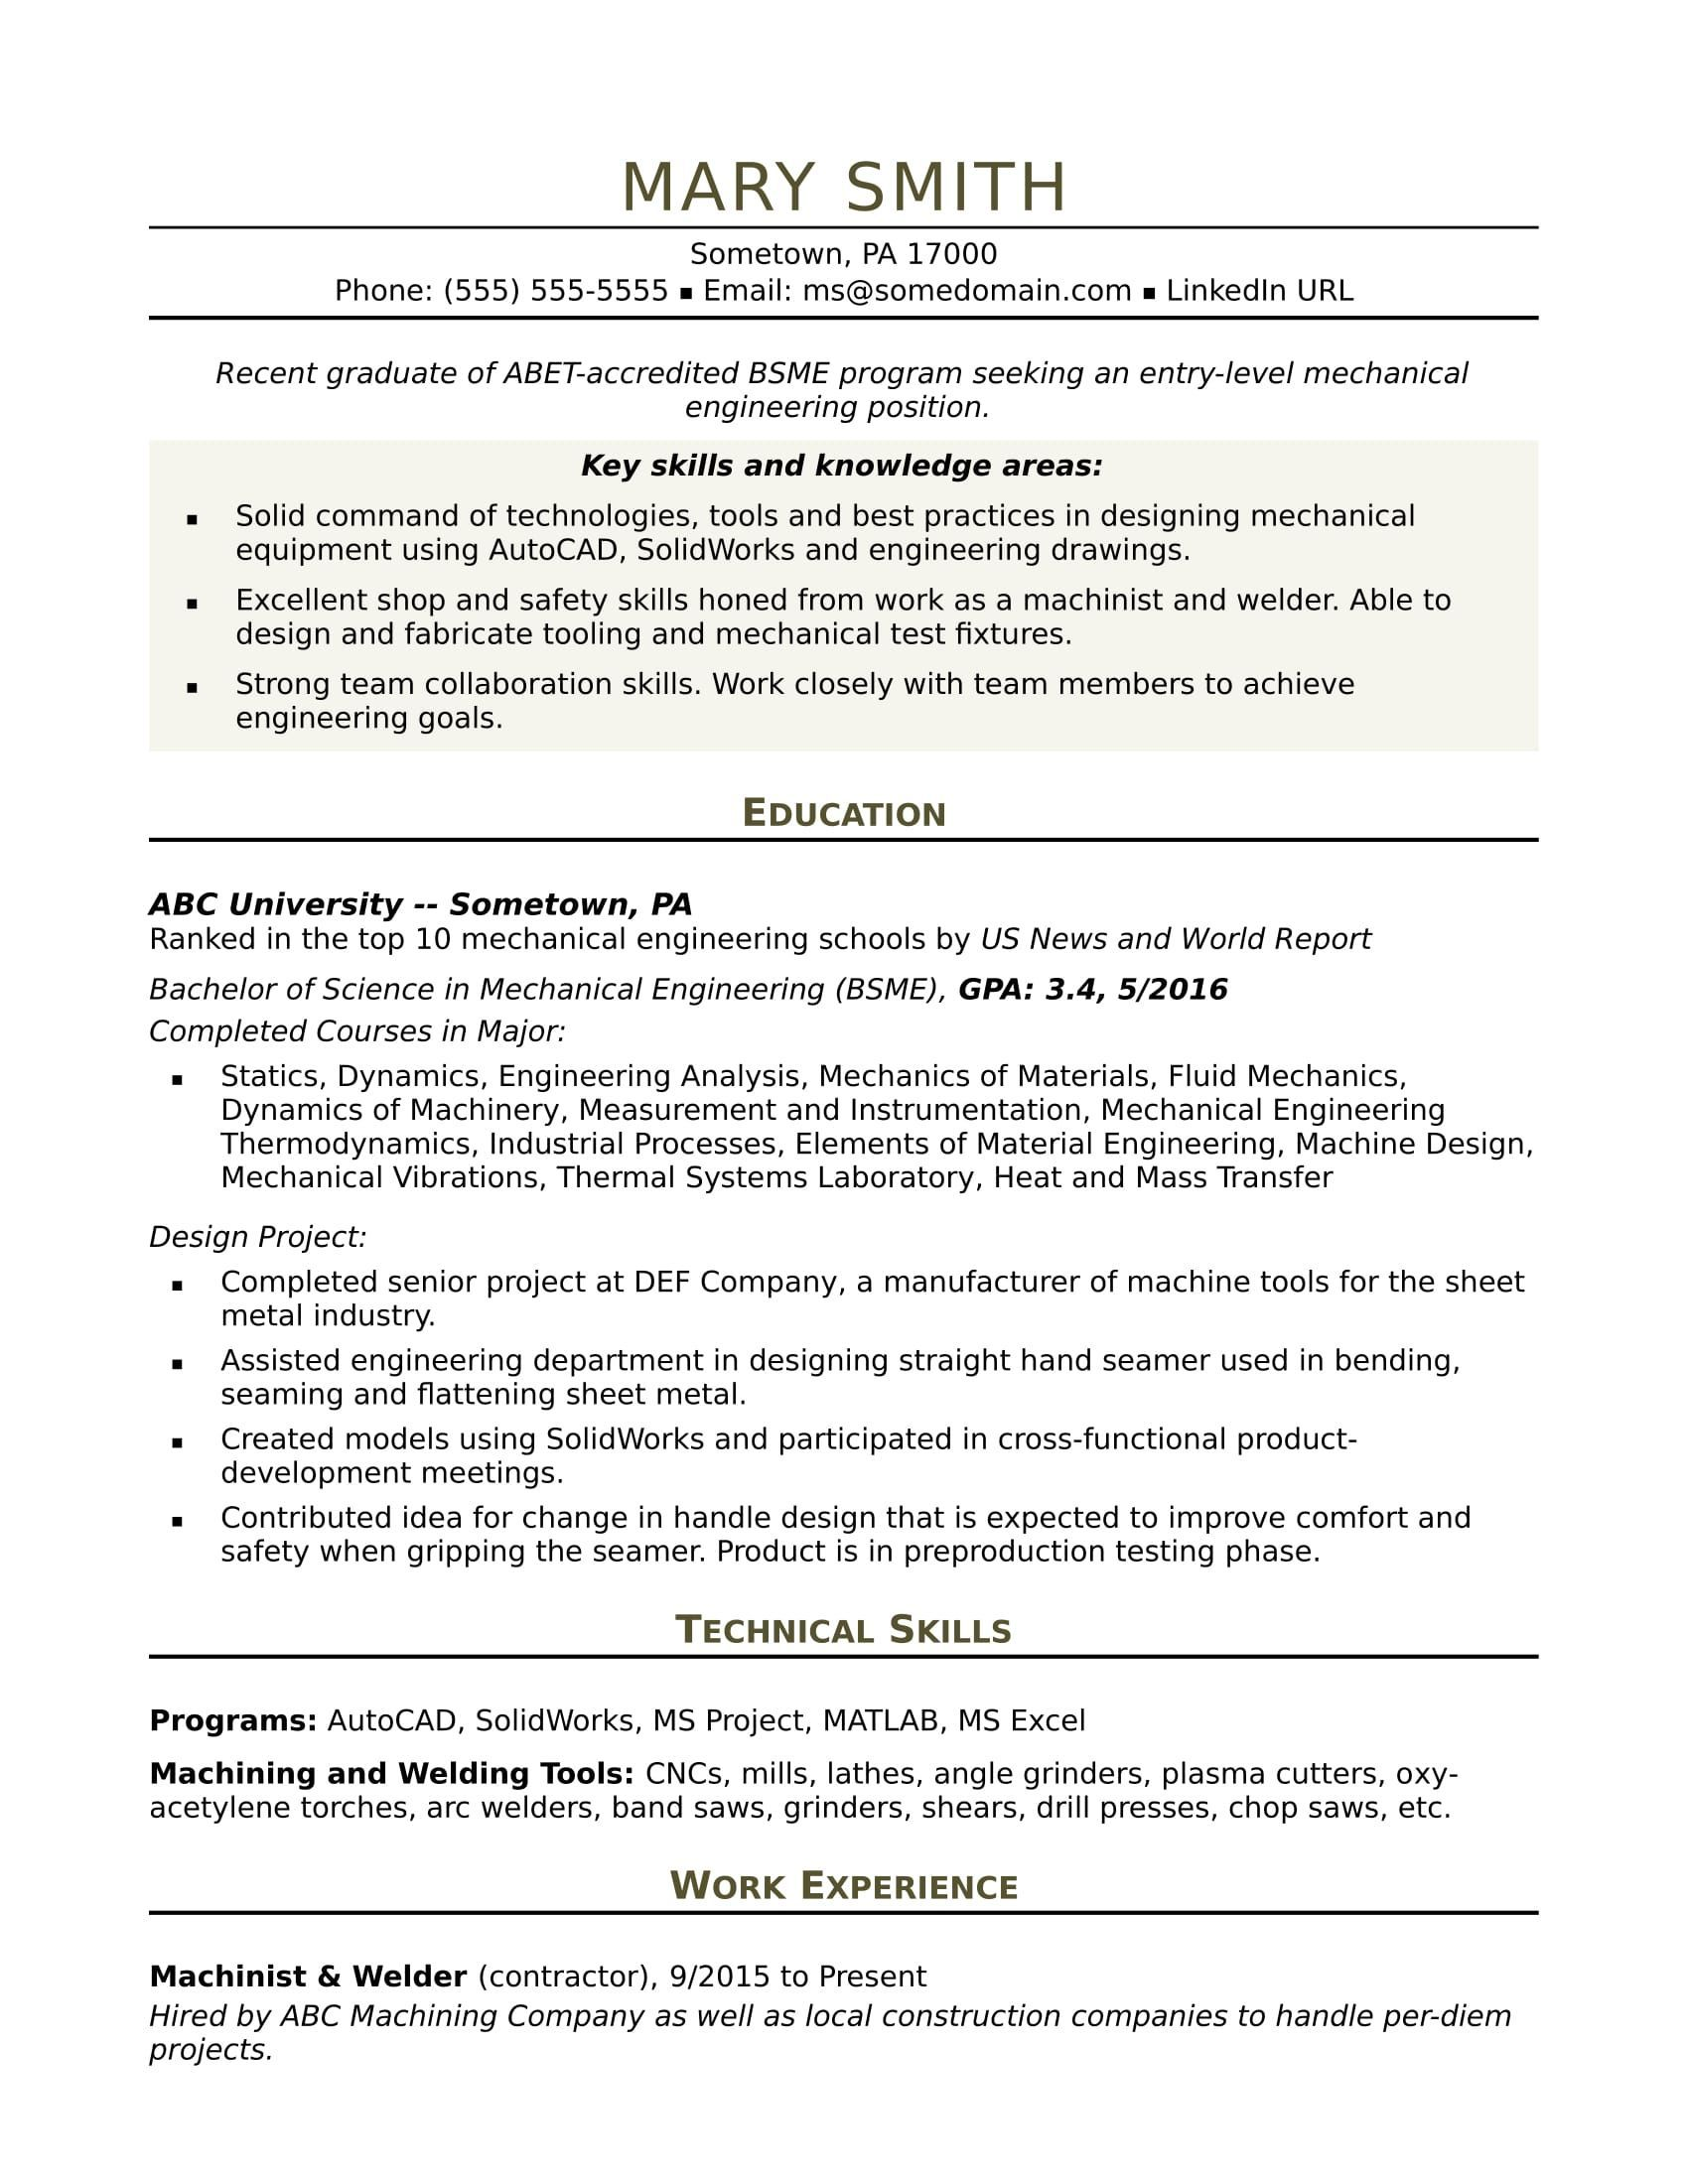 Entry Level Mechanical Engineering Resume Sample Resume For An Entrylevel Mechanical Engineer .